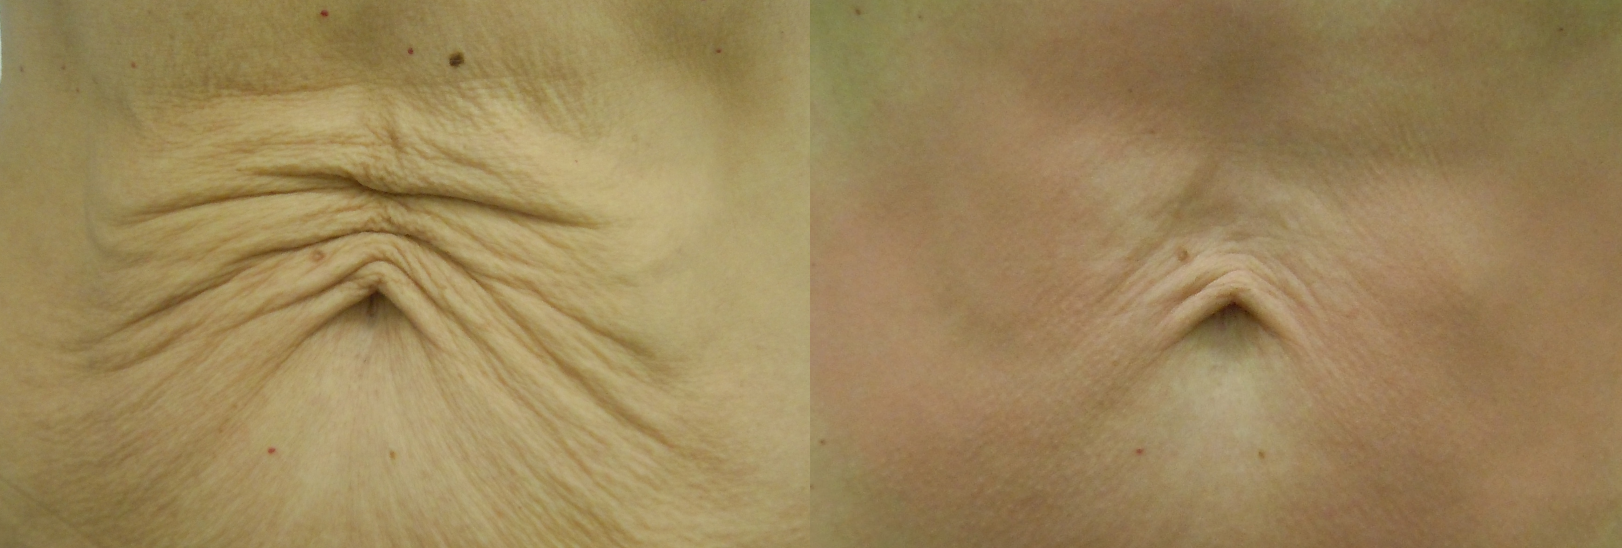 Soprano Skin Tightening - Before and After